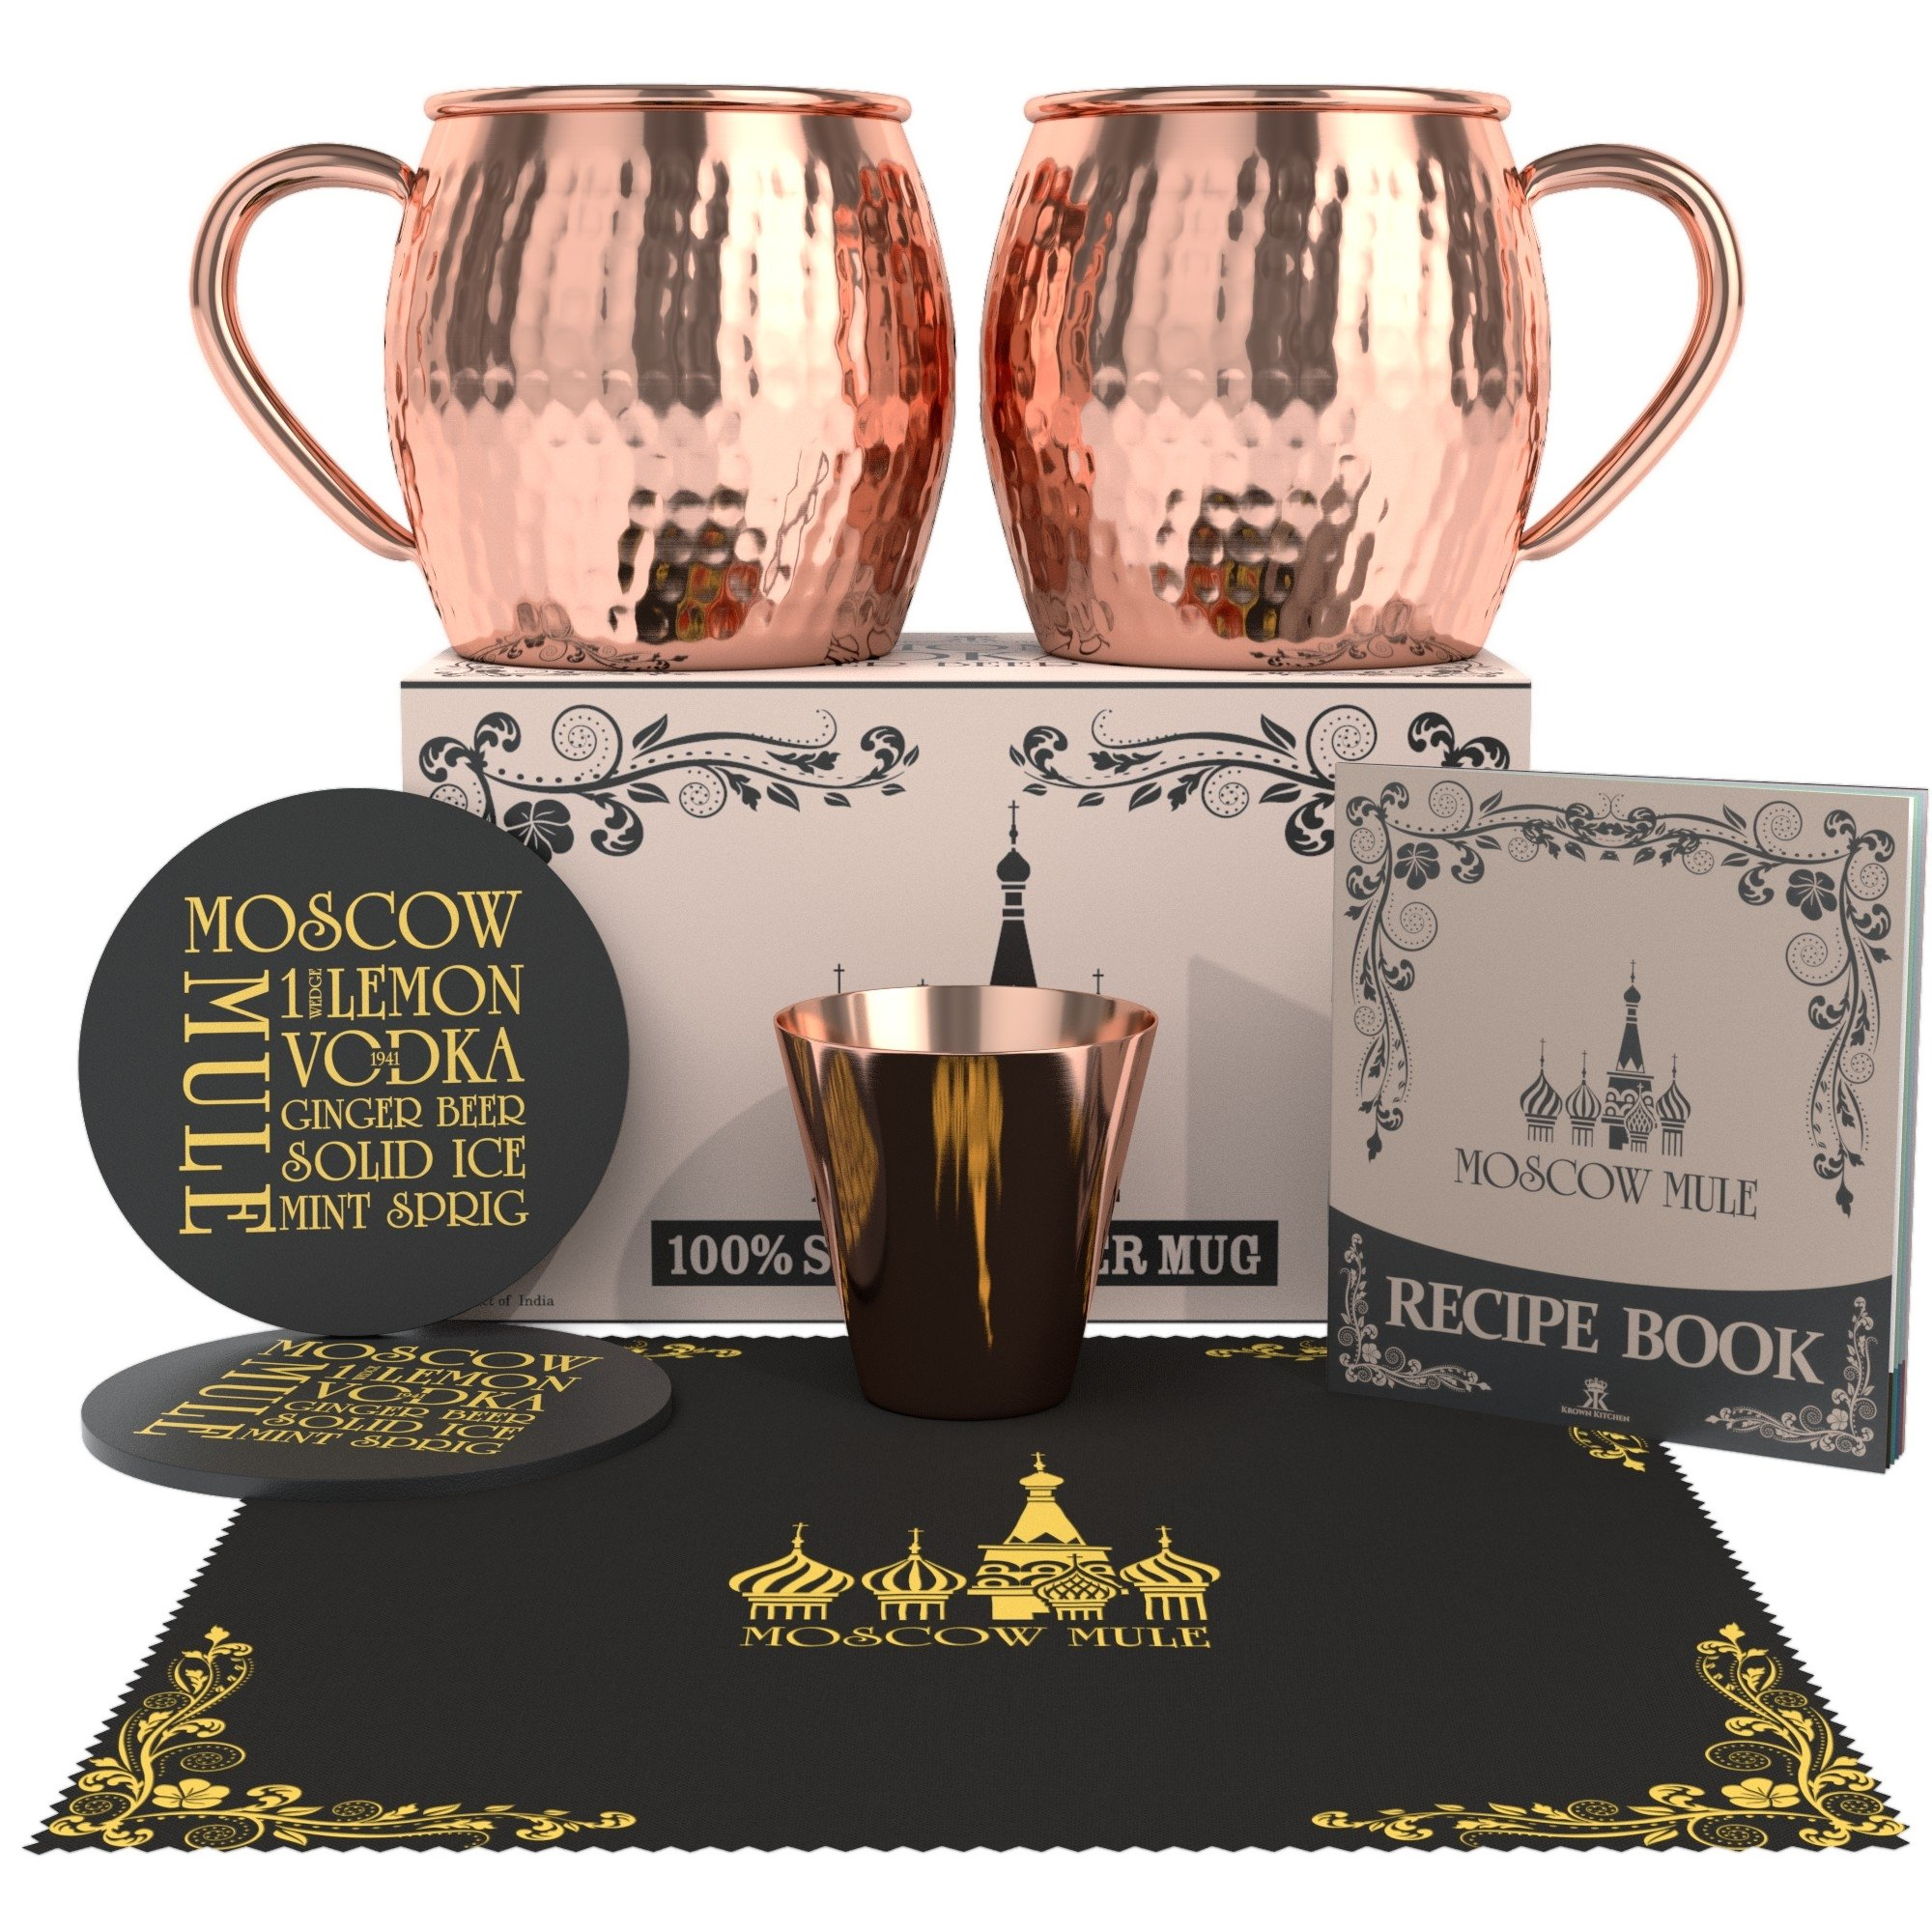 Krown Kitchen - Hammered Moscow Mule Copper Mugs Set of 2 | 100% Solid Copper | 16 oz